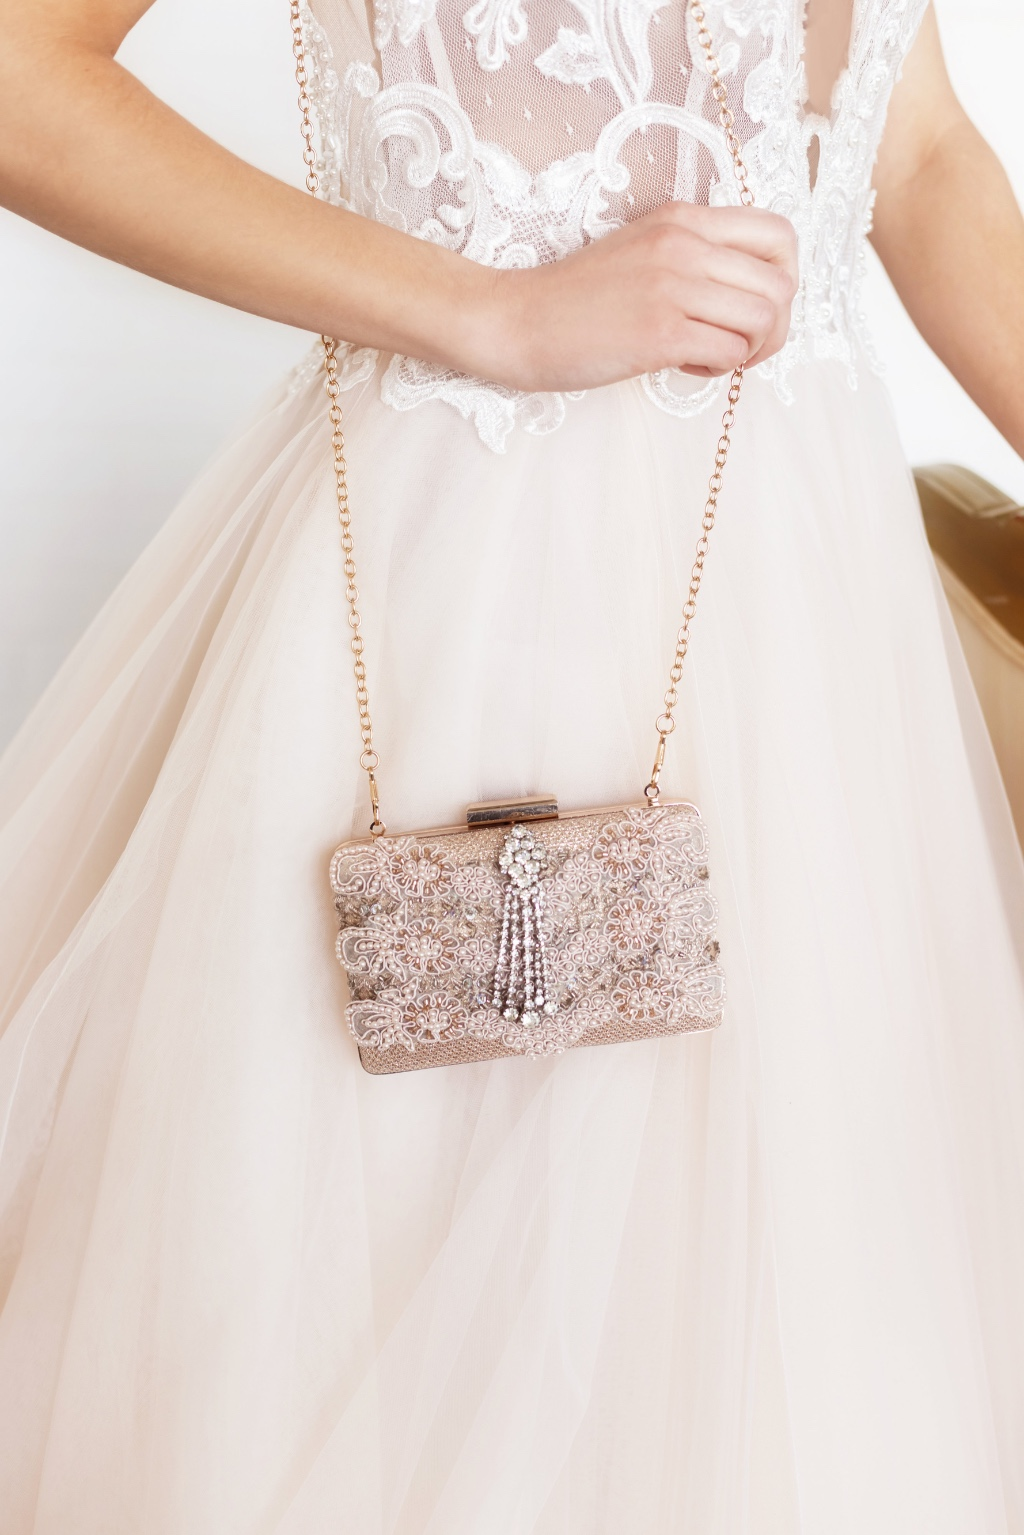 Pretty little touches of blush details